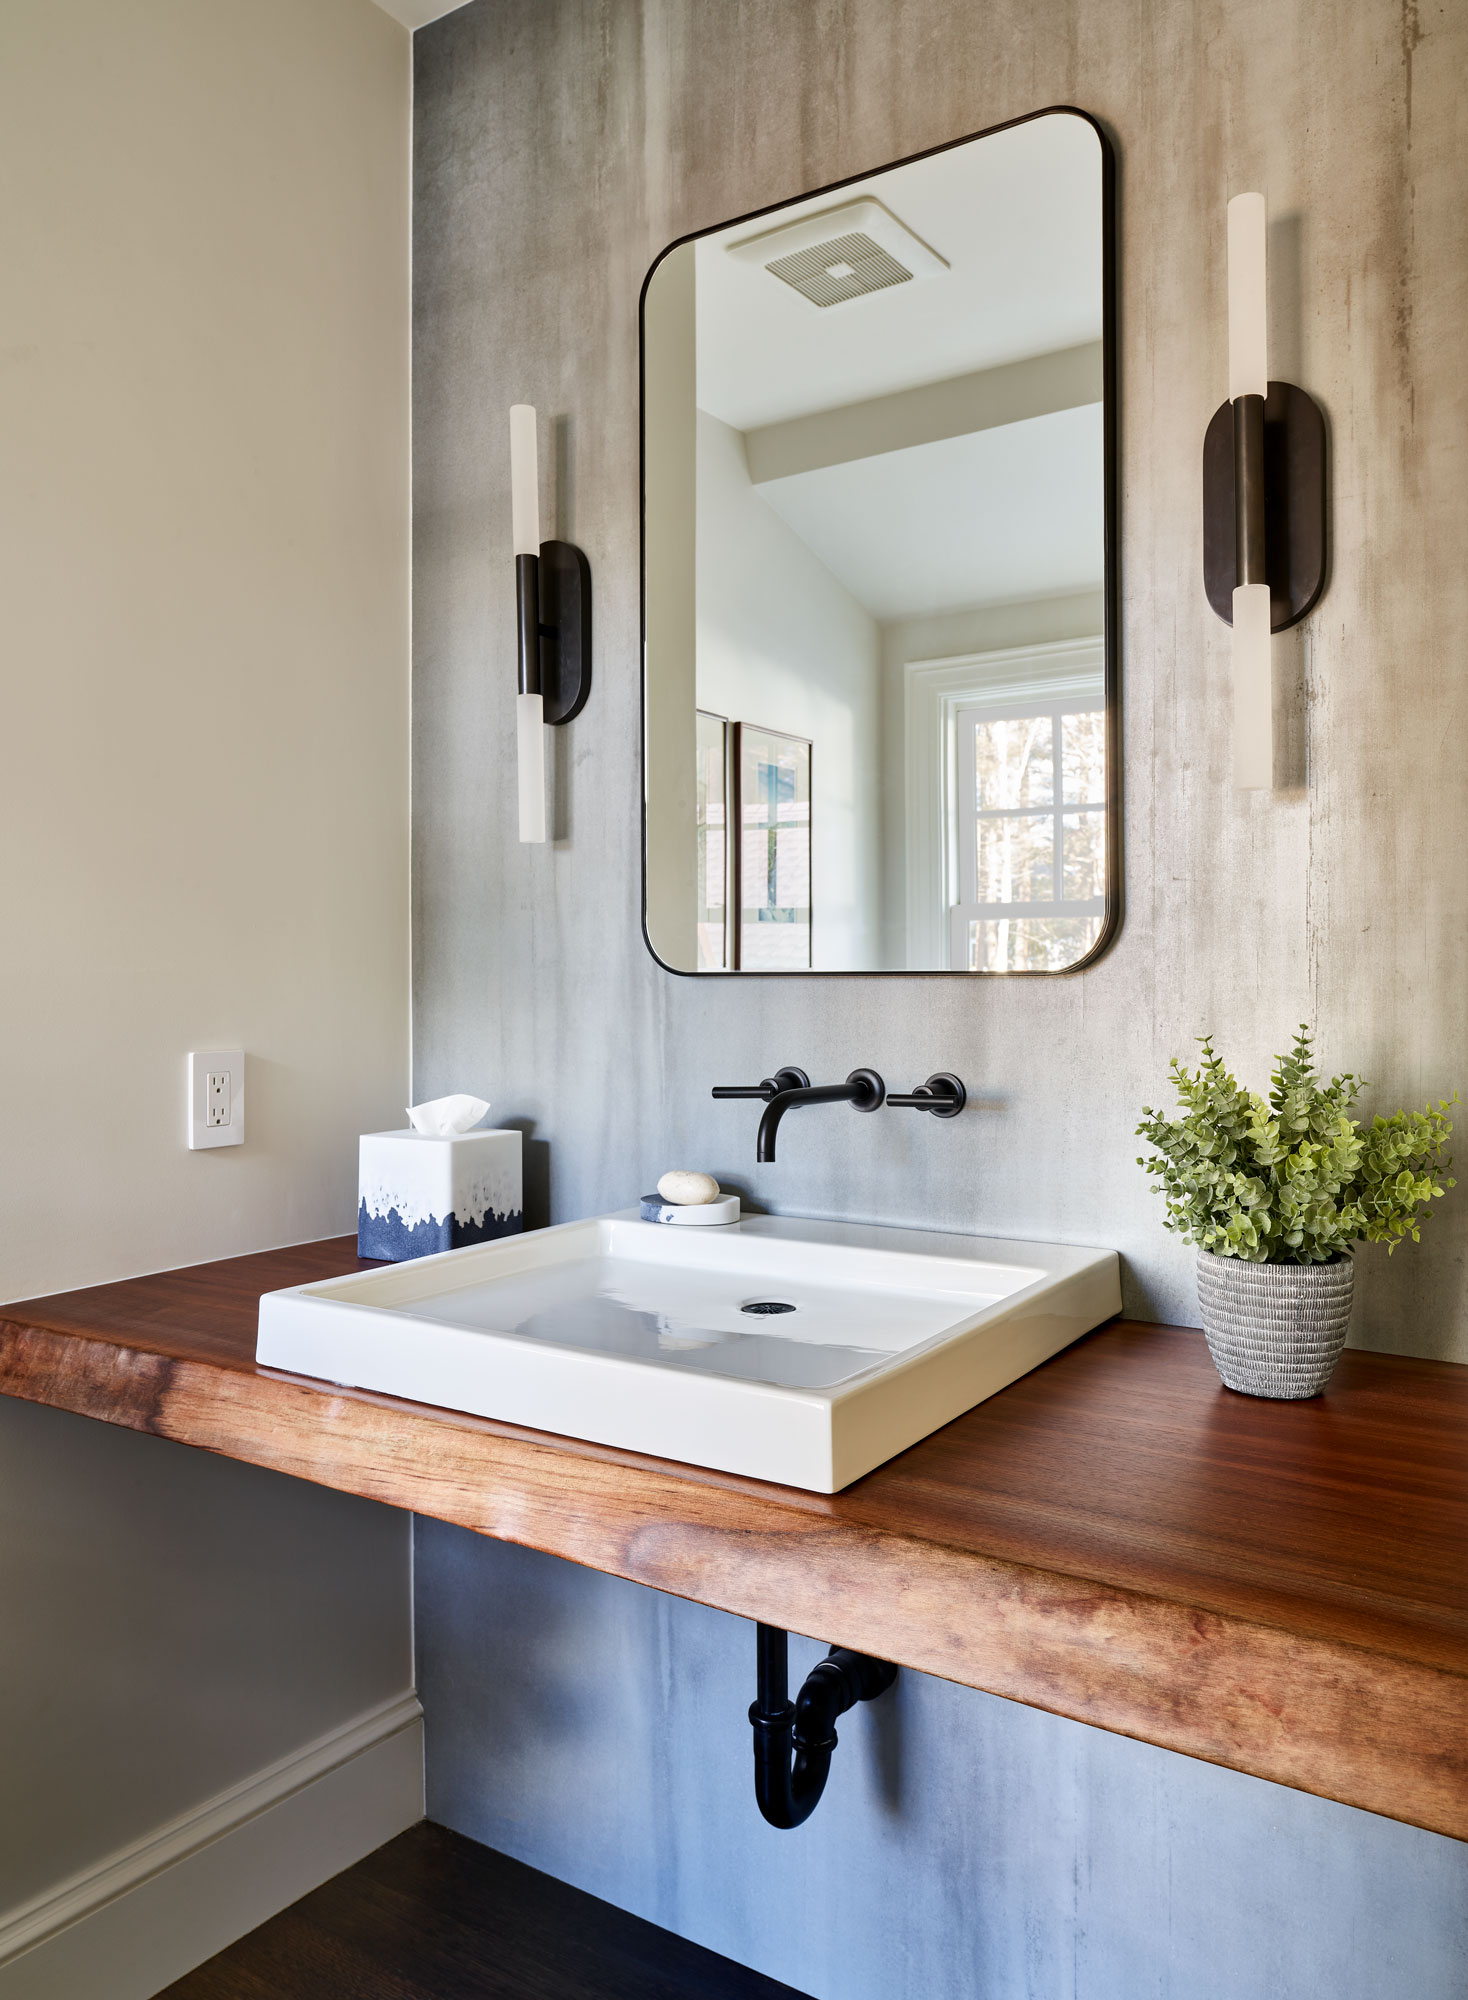 Custom Solid Wood Vanity Counters by Grothouse